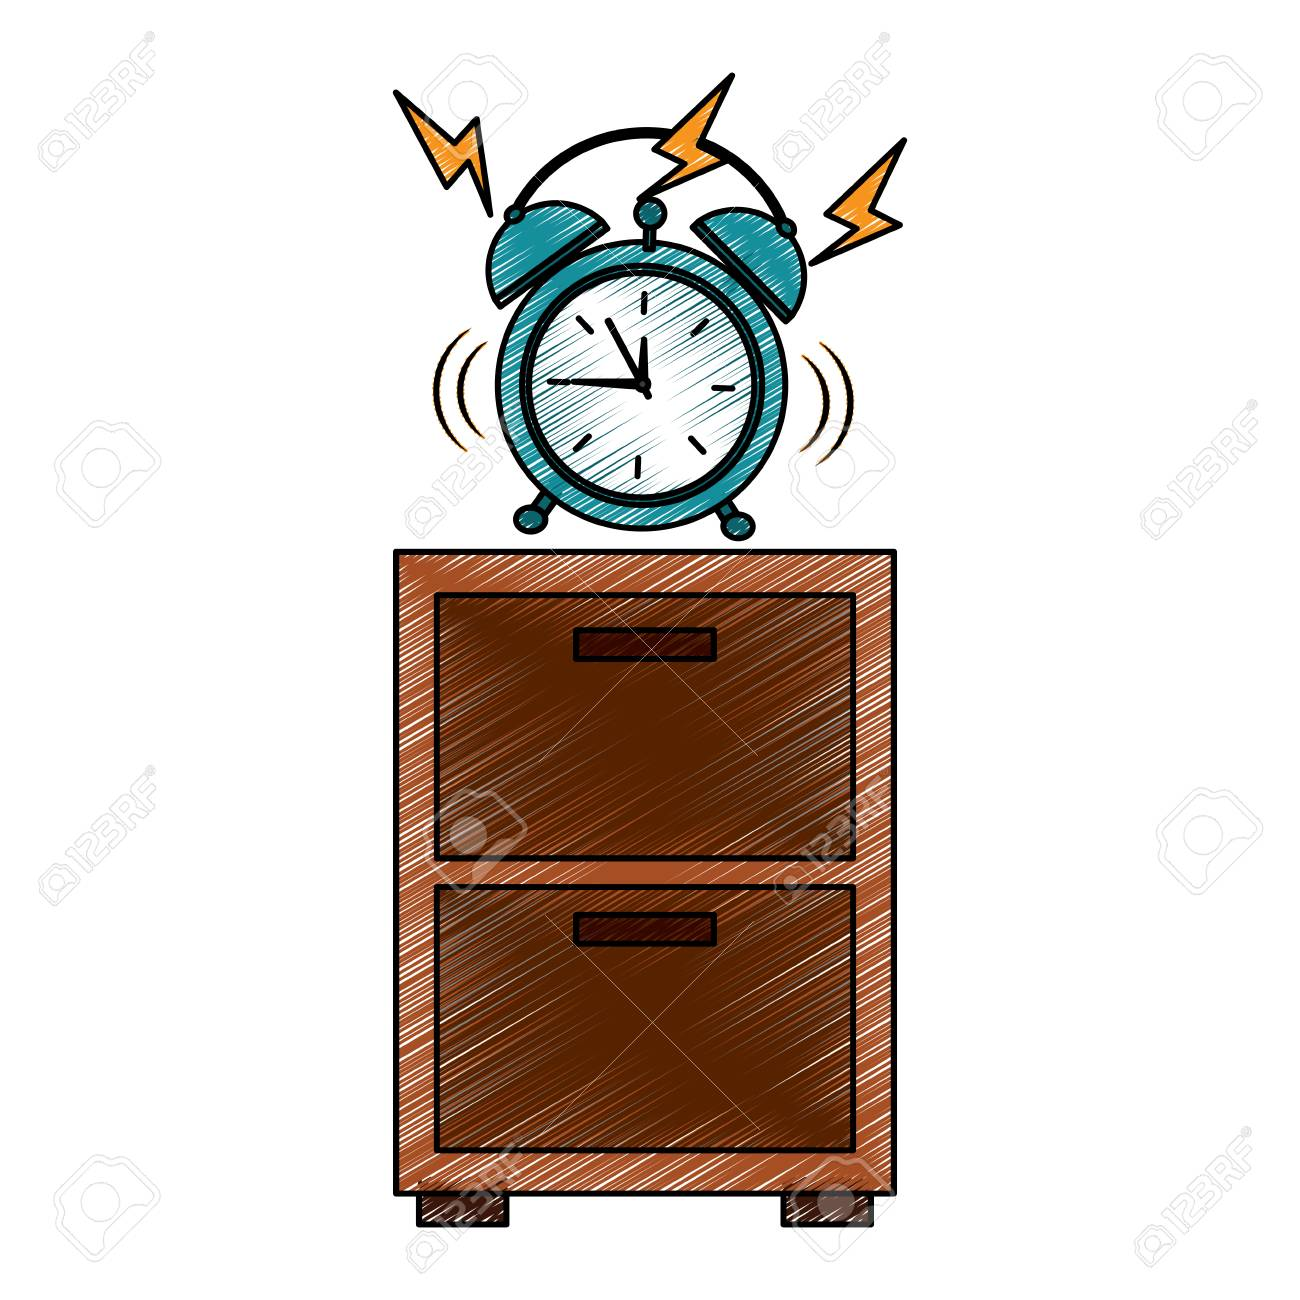 Bedside table clipart  Wooden Bedside Table Clock Alarm Ring Vector Illustration Drawing ...